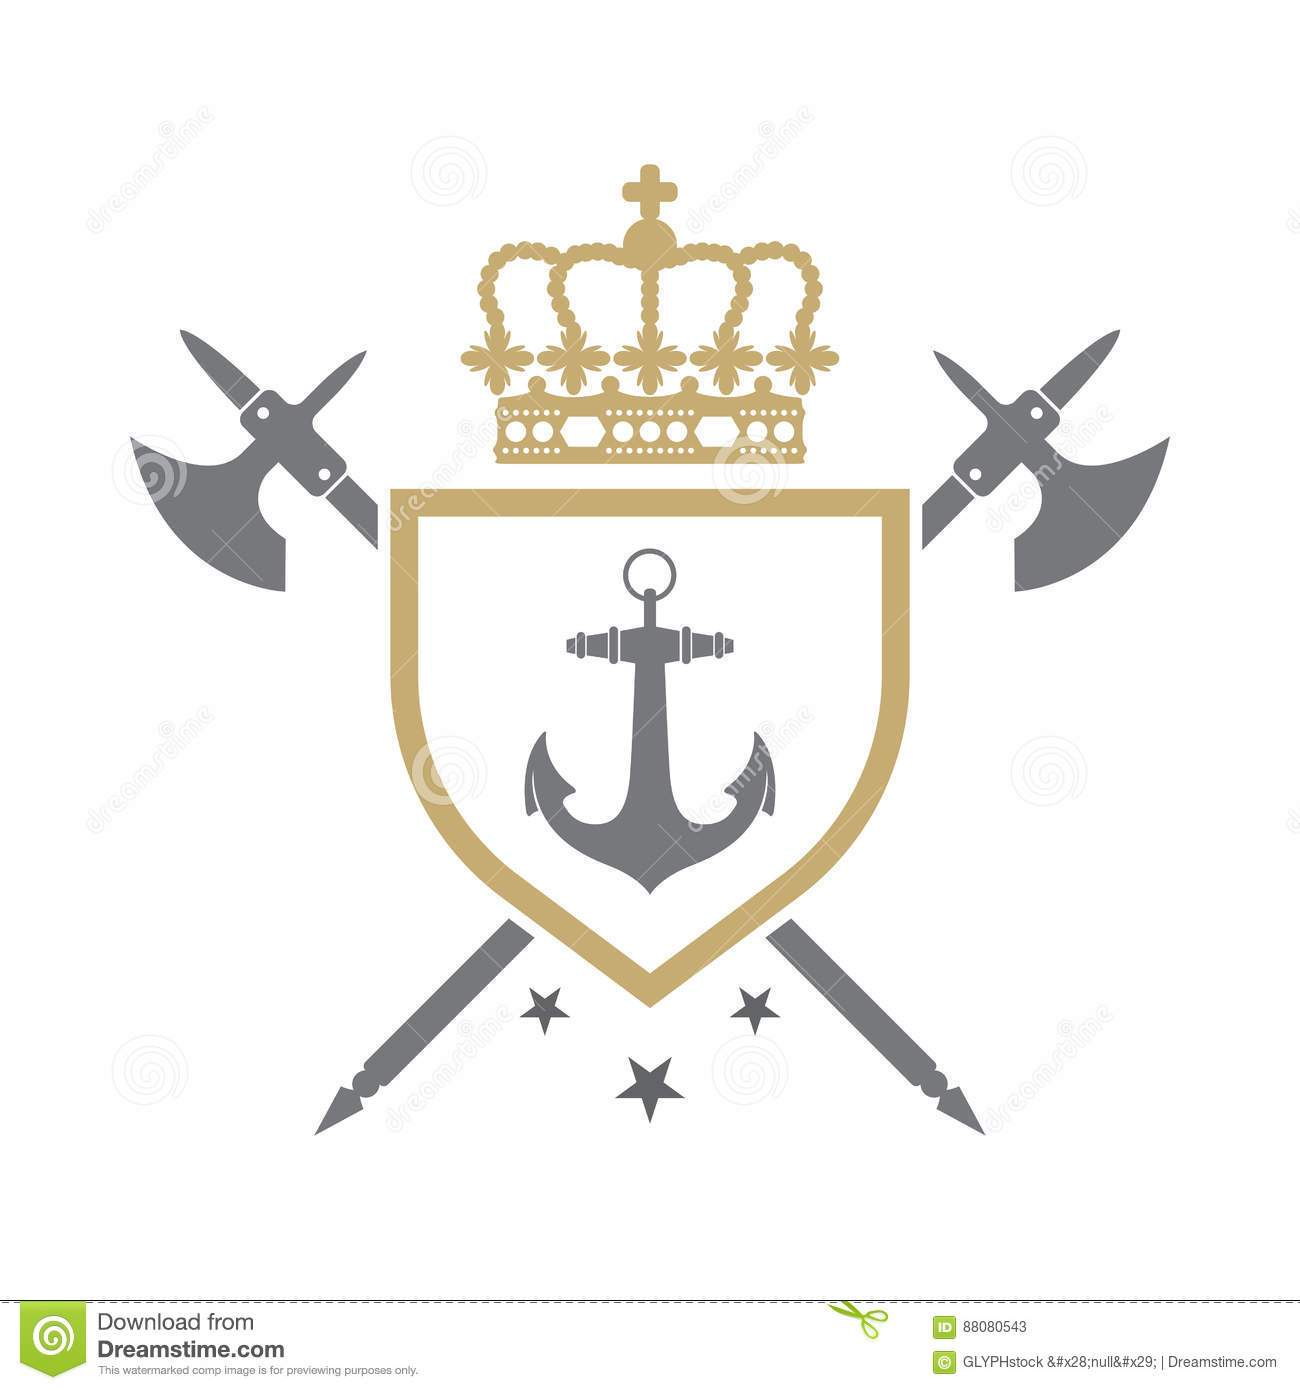 Royal crest clipart picture royalty free download Royal crest clipart 2 » Clipart Portal picture royalty free download